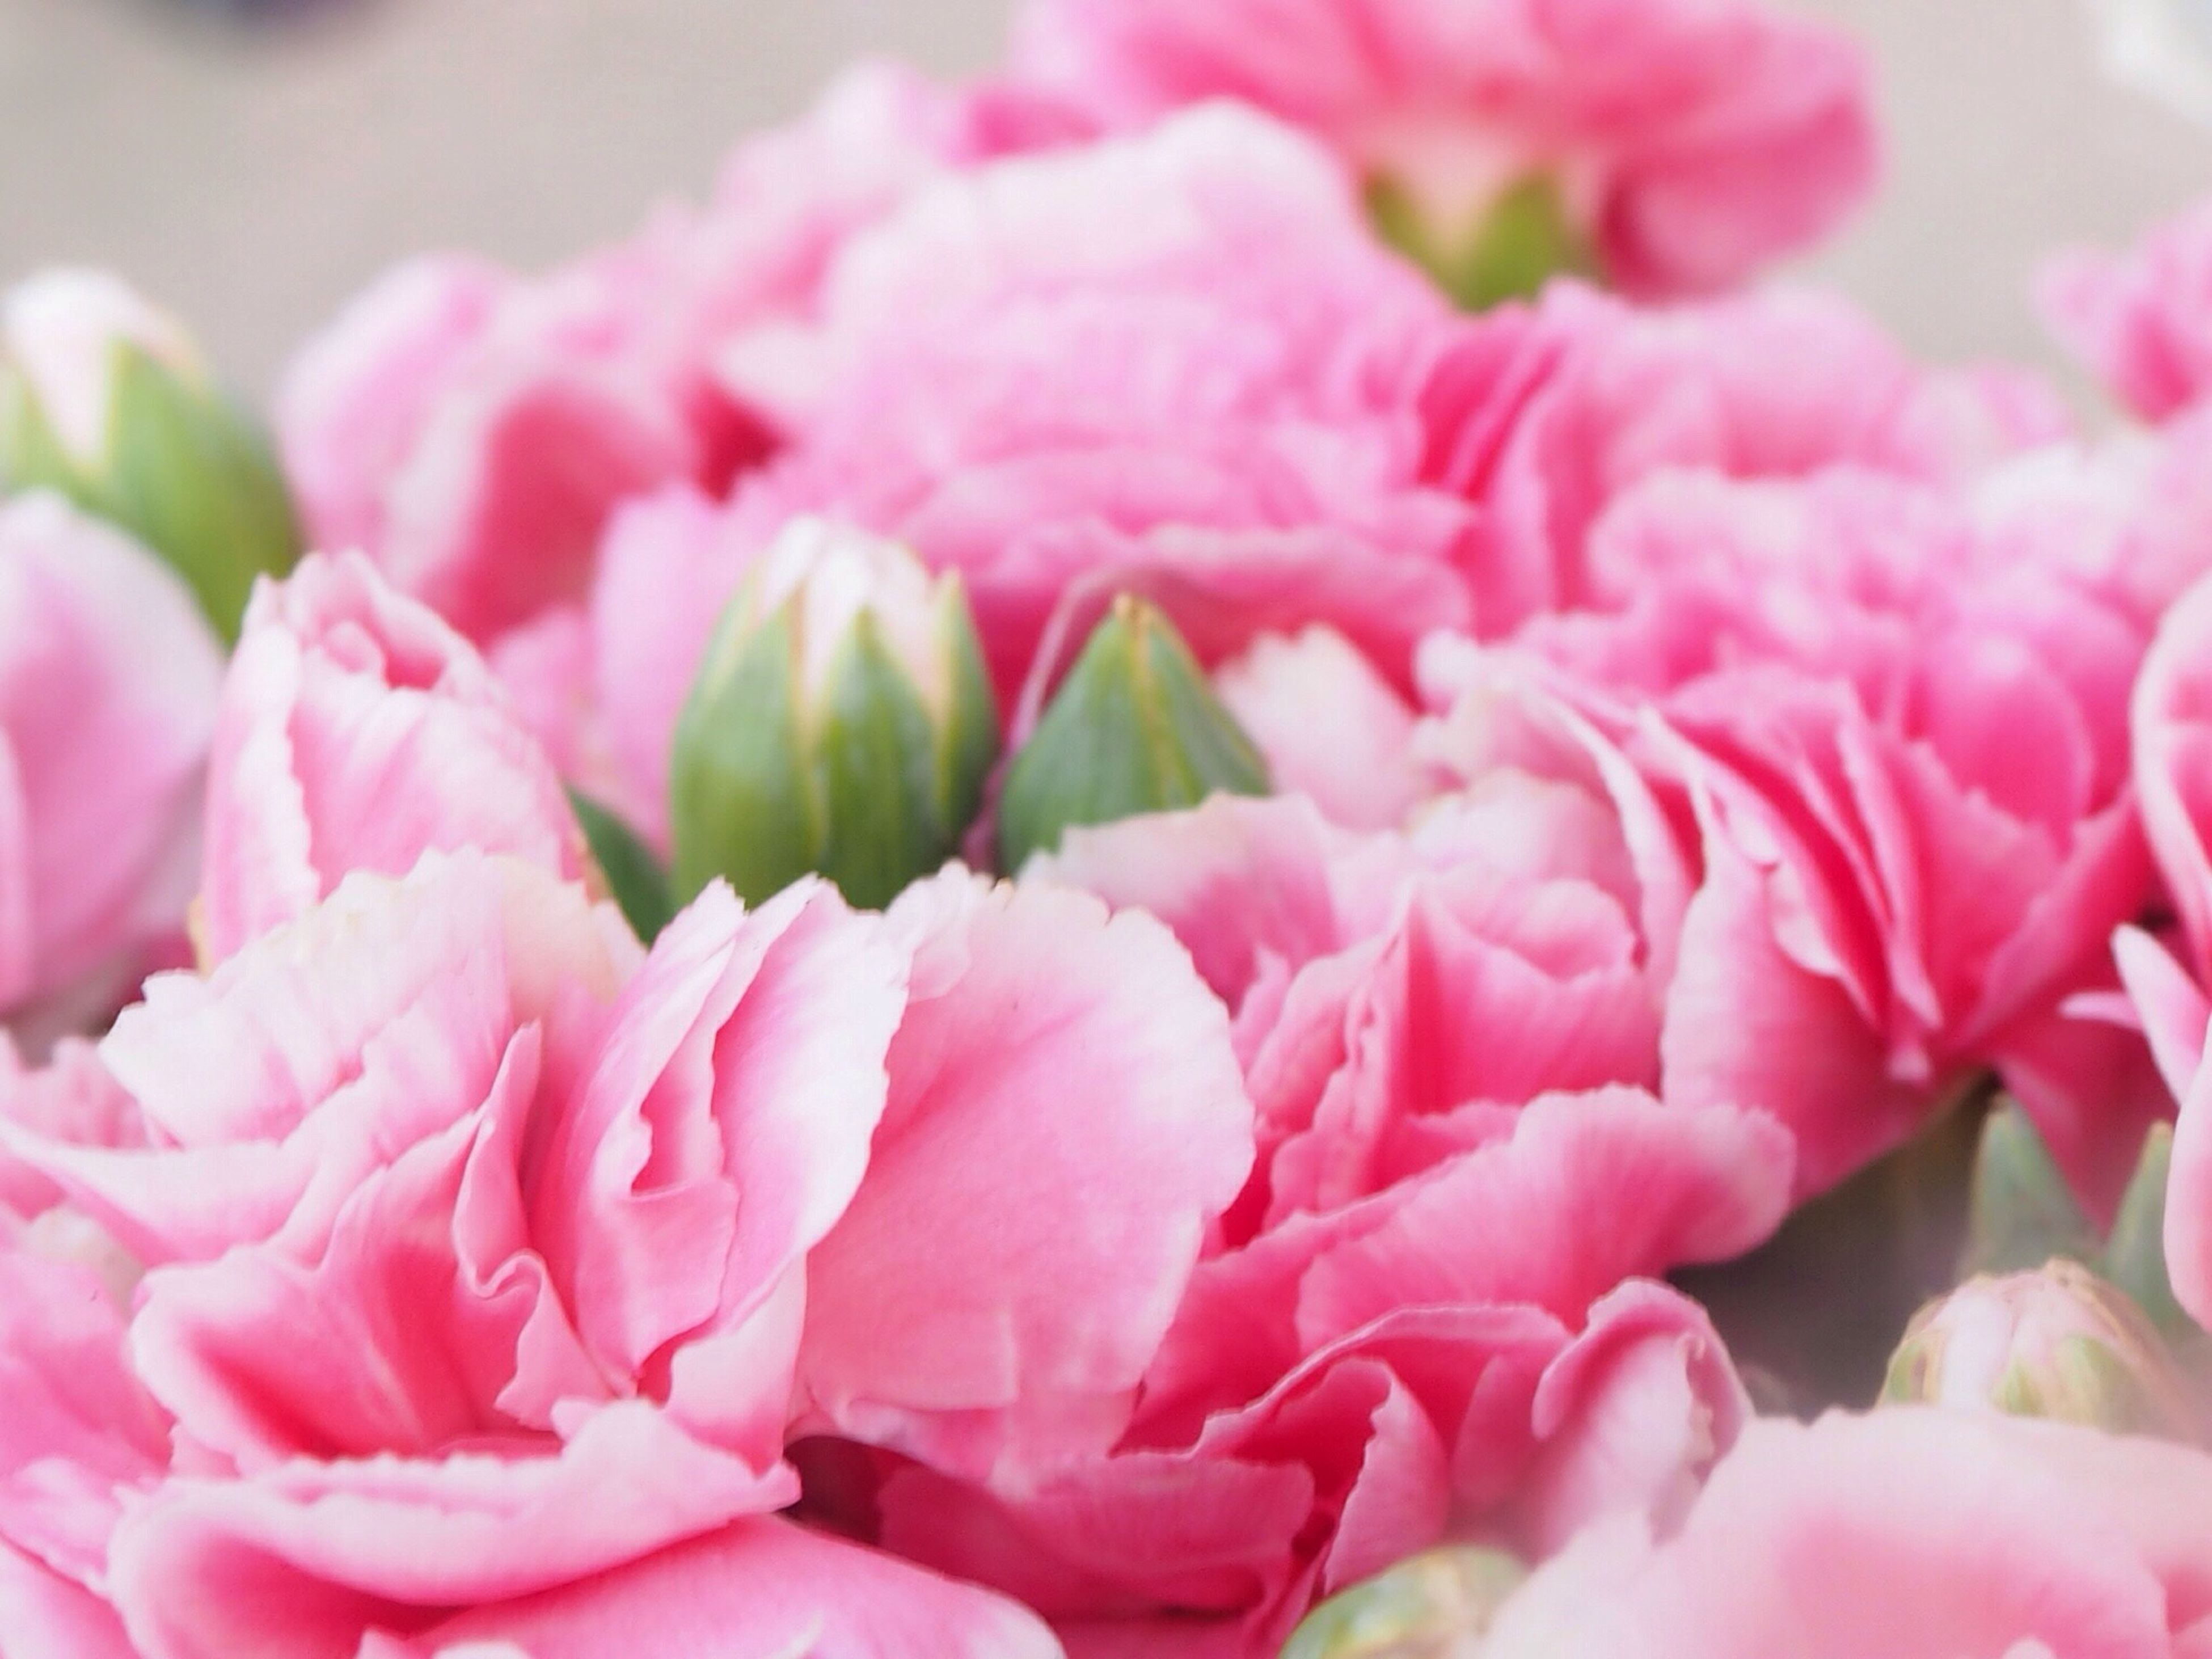 flower, freshness, petal, fragility, pink color, close-up, flower head, beauty in nature, growth, nature, focus on foreground, rose - flower, pink, selective focus, plant, blooming, no people, day, single flower, in bloom